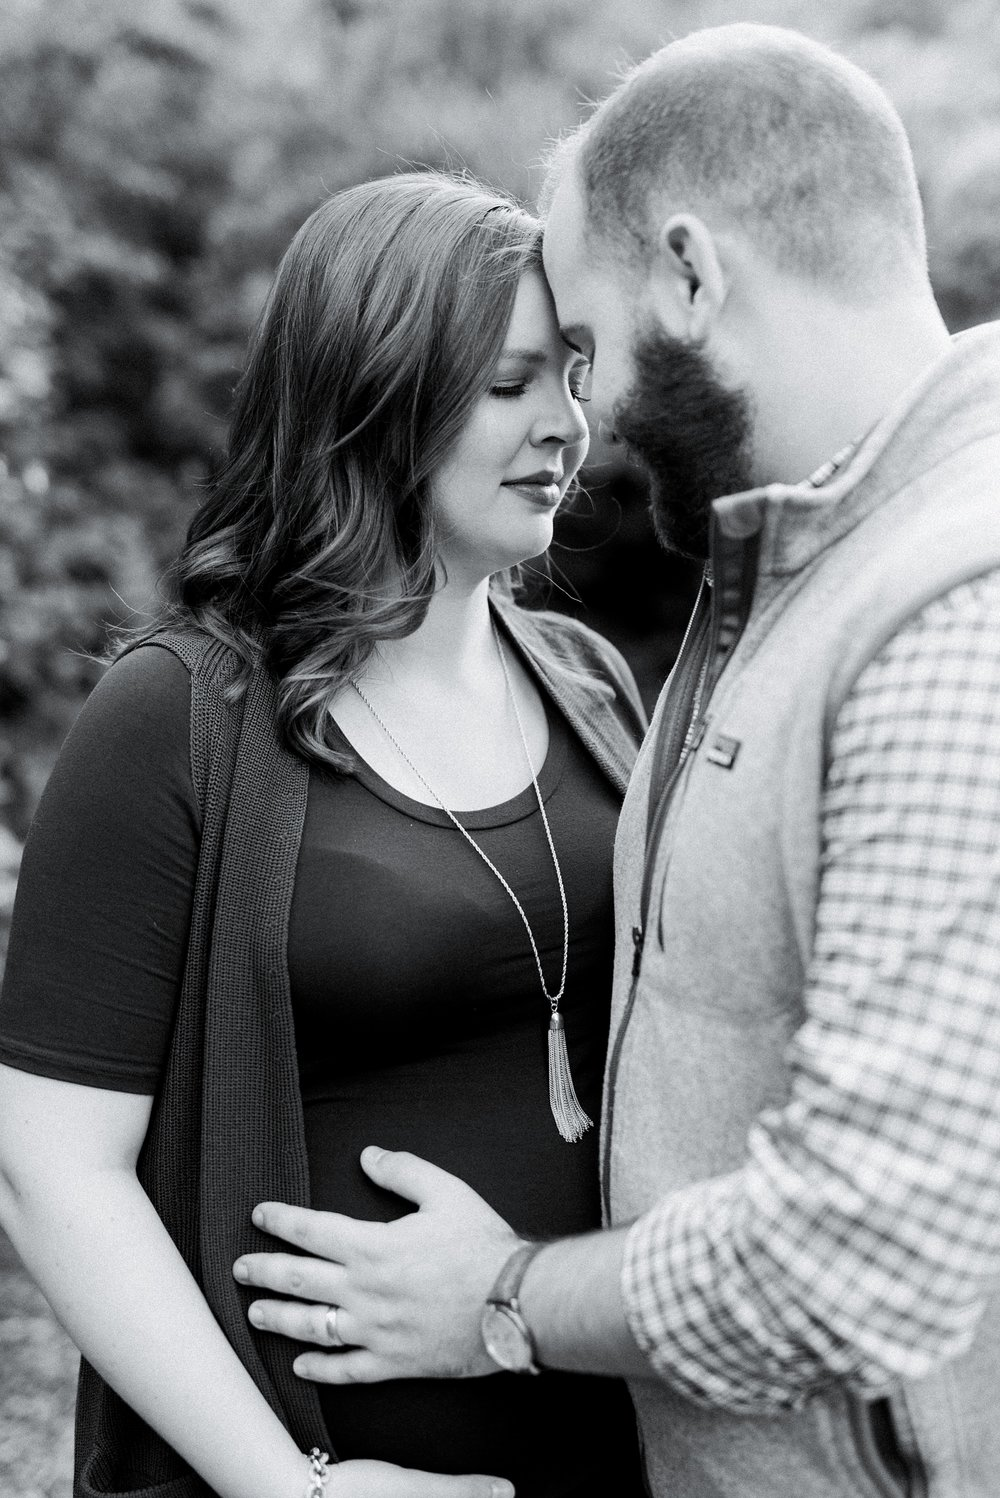 cator-woolforld-gardens-atlanta-fine-art-maternity-photographer-boltfamily-28.jpg